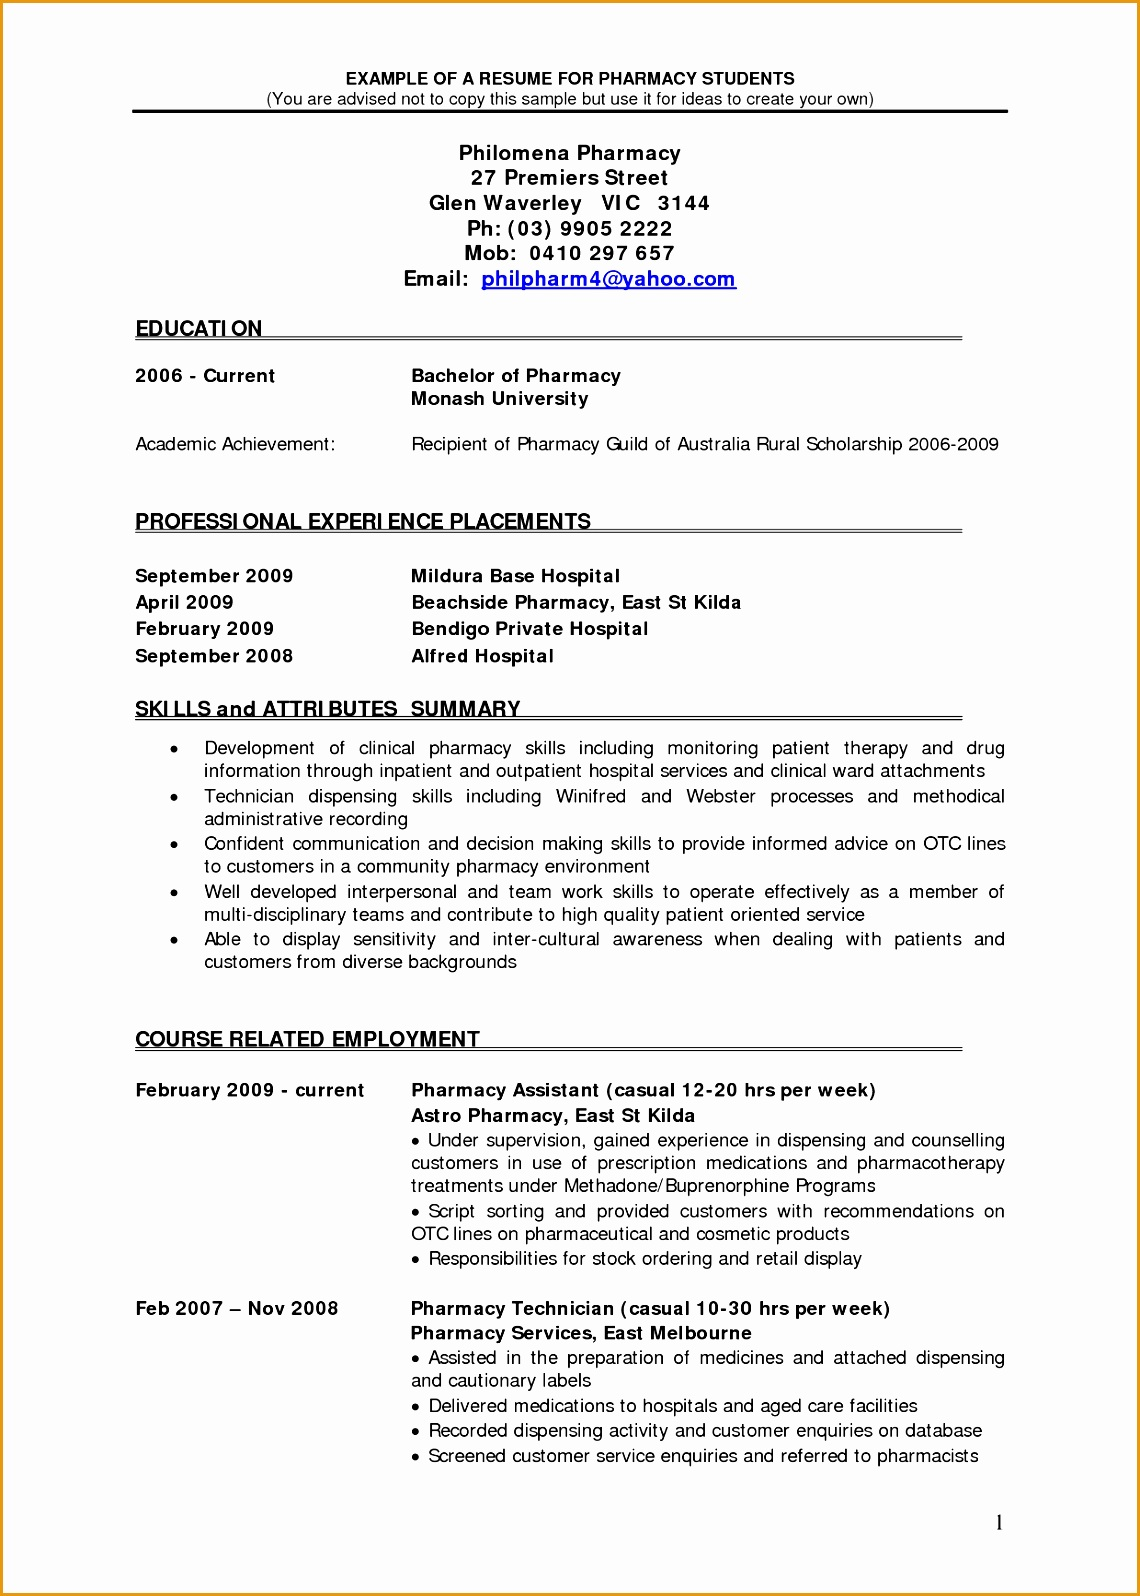 freshers pharmacy resume format15961140